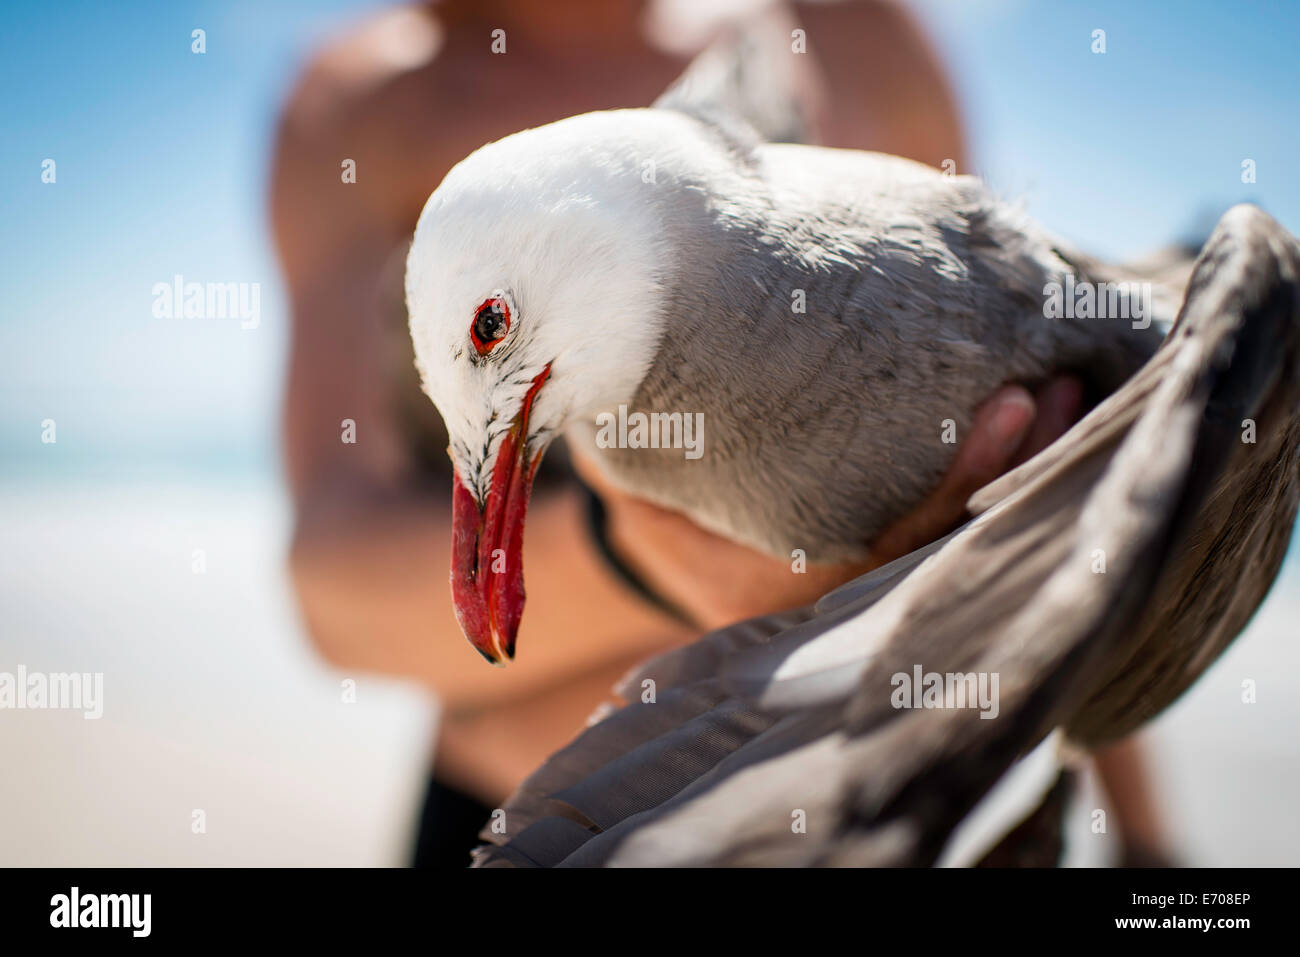 Mid adult male holding seagull, focus on seagull - Stock Image